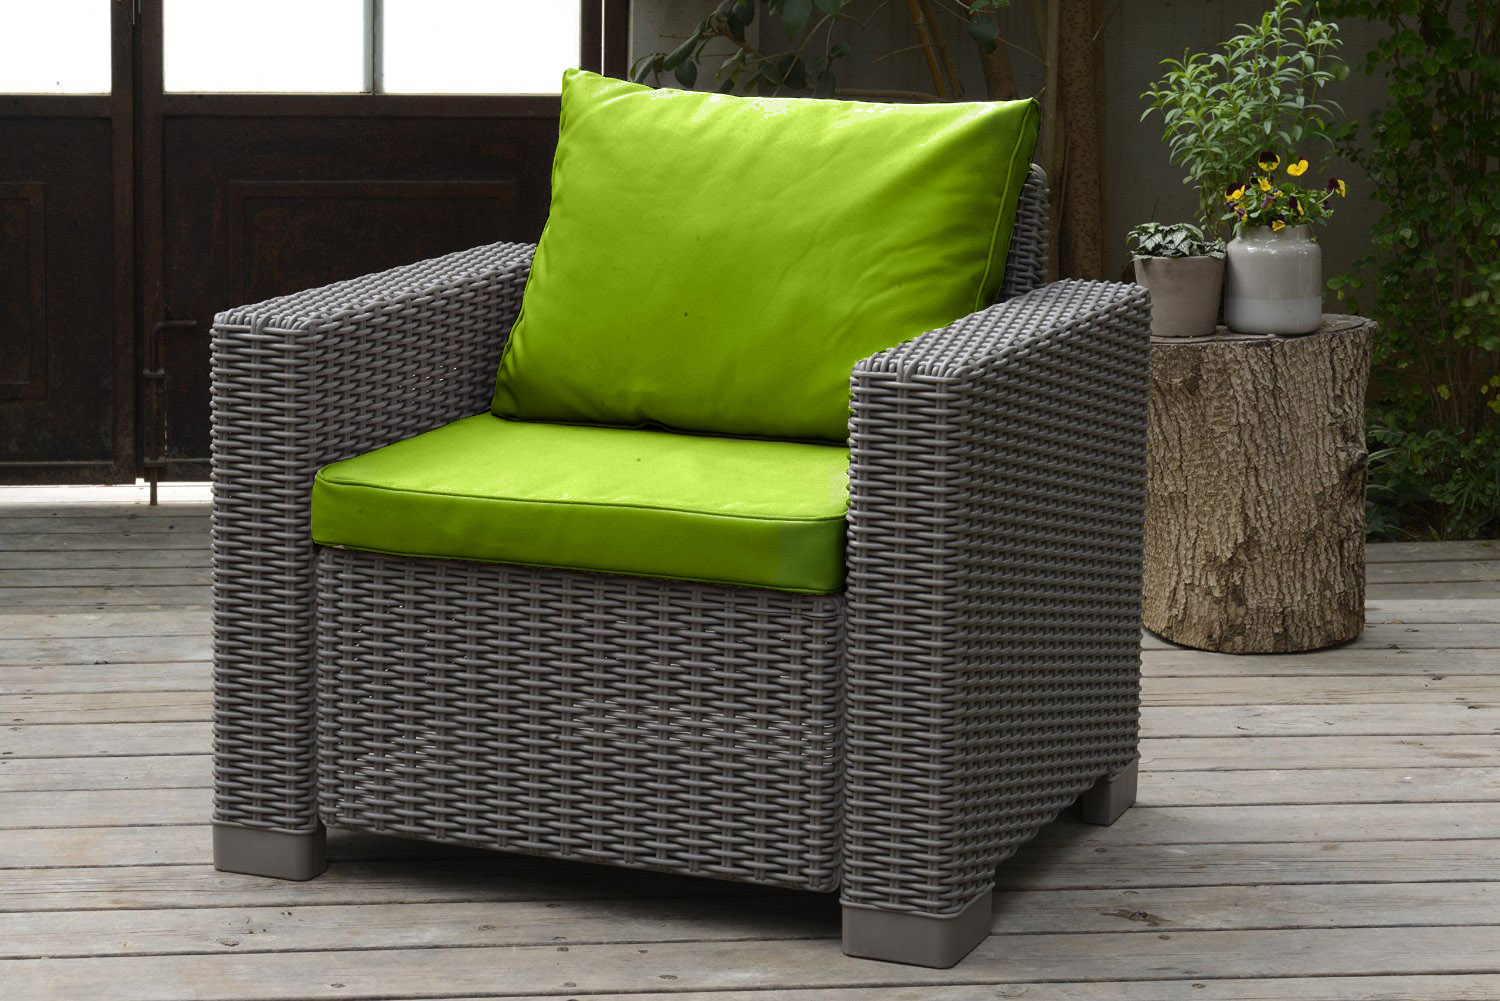 Rattan Garden Sofa Set Ebay Cushion Pads For Keter Allibert California Rattan Garden